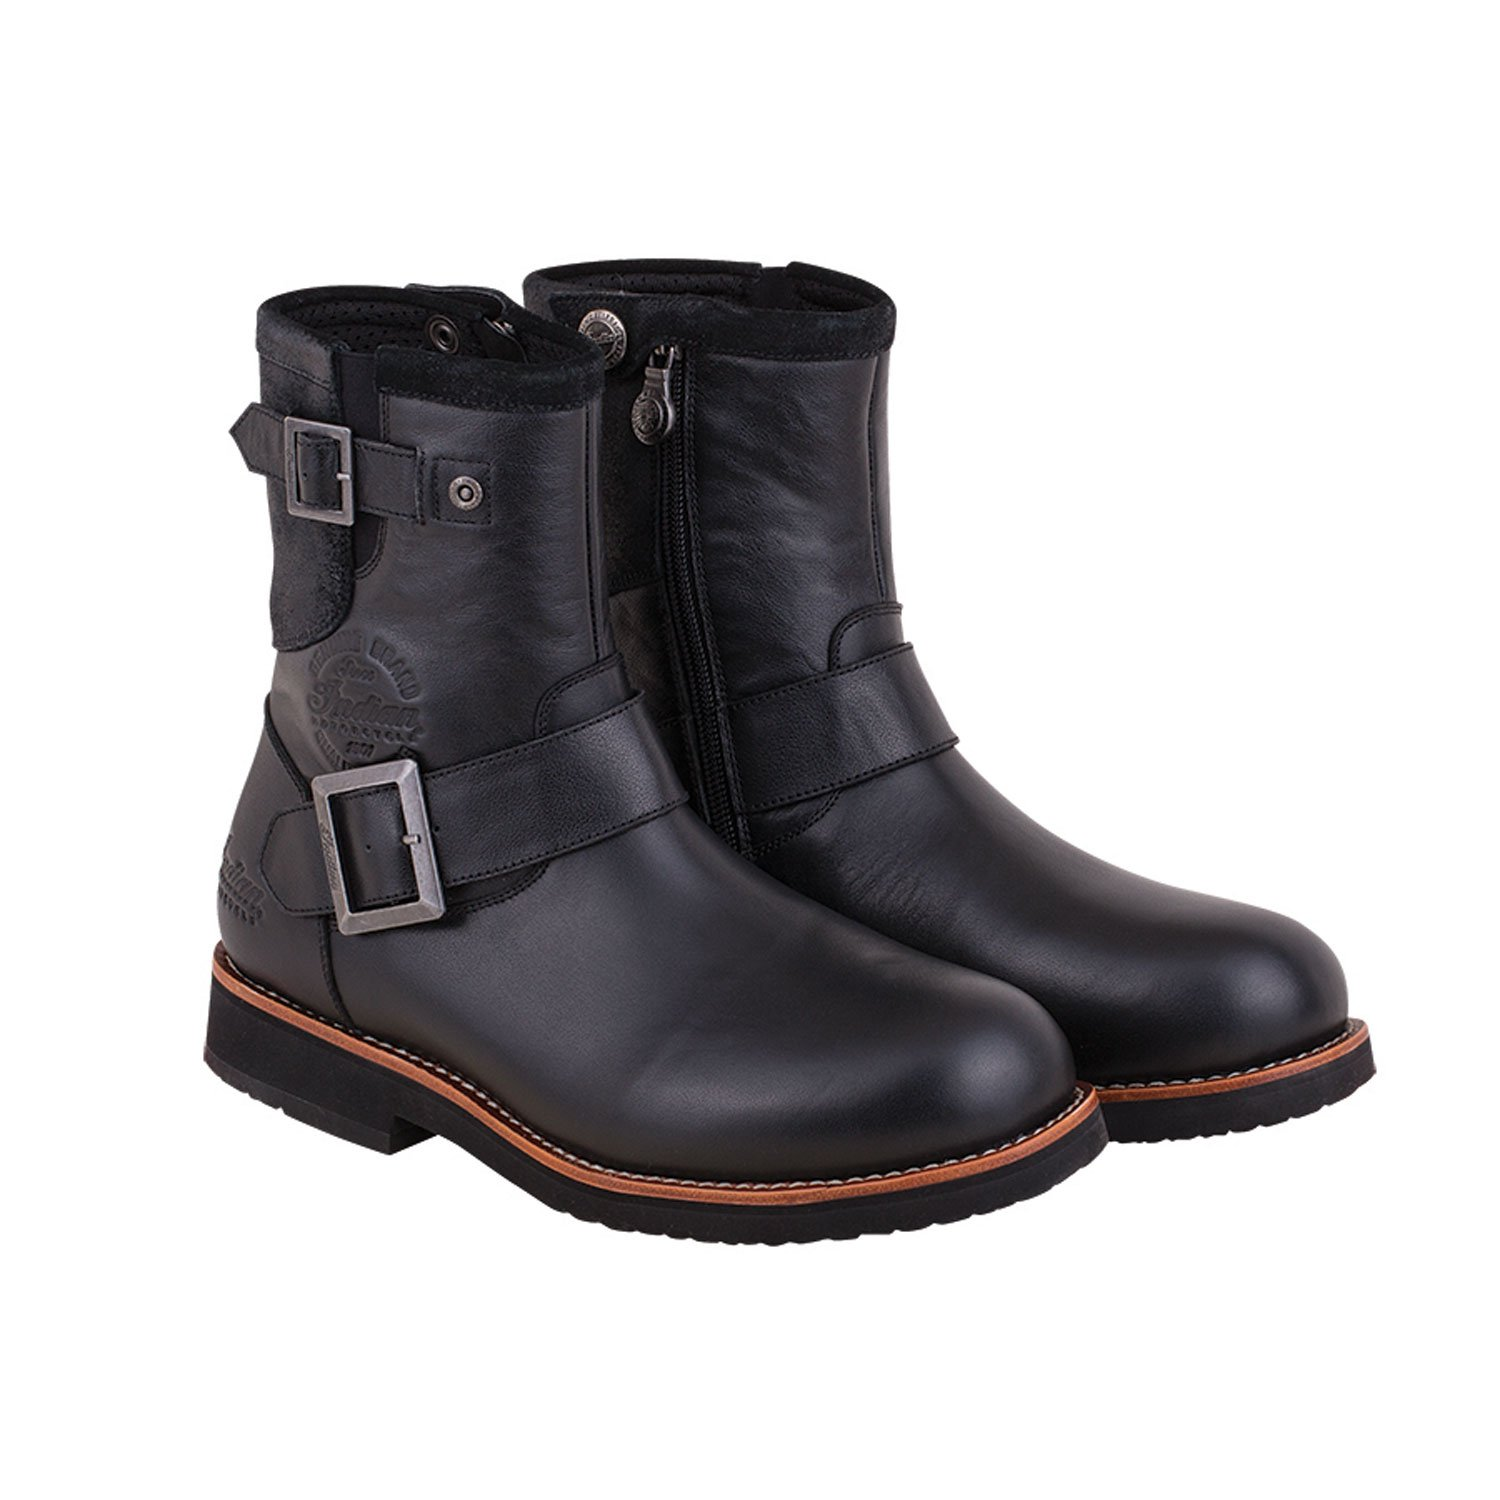 Men's Leather Engineer Riding Boot, Black